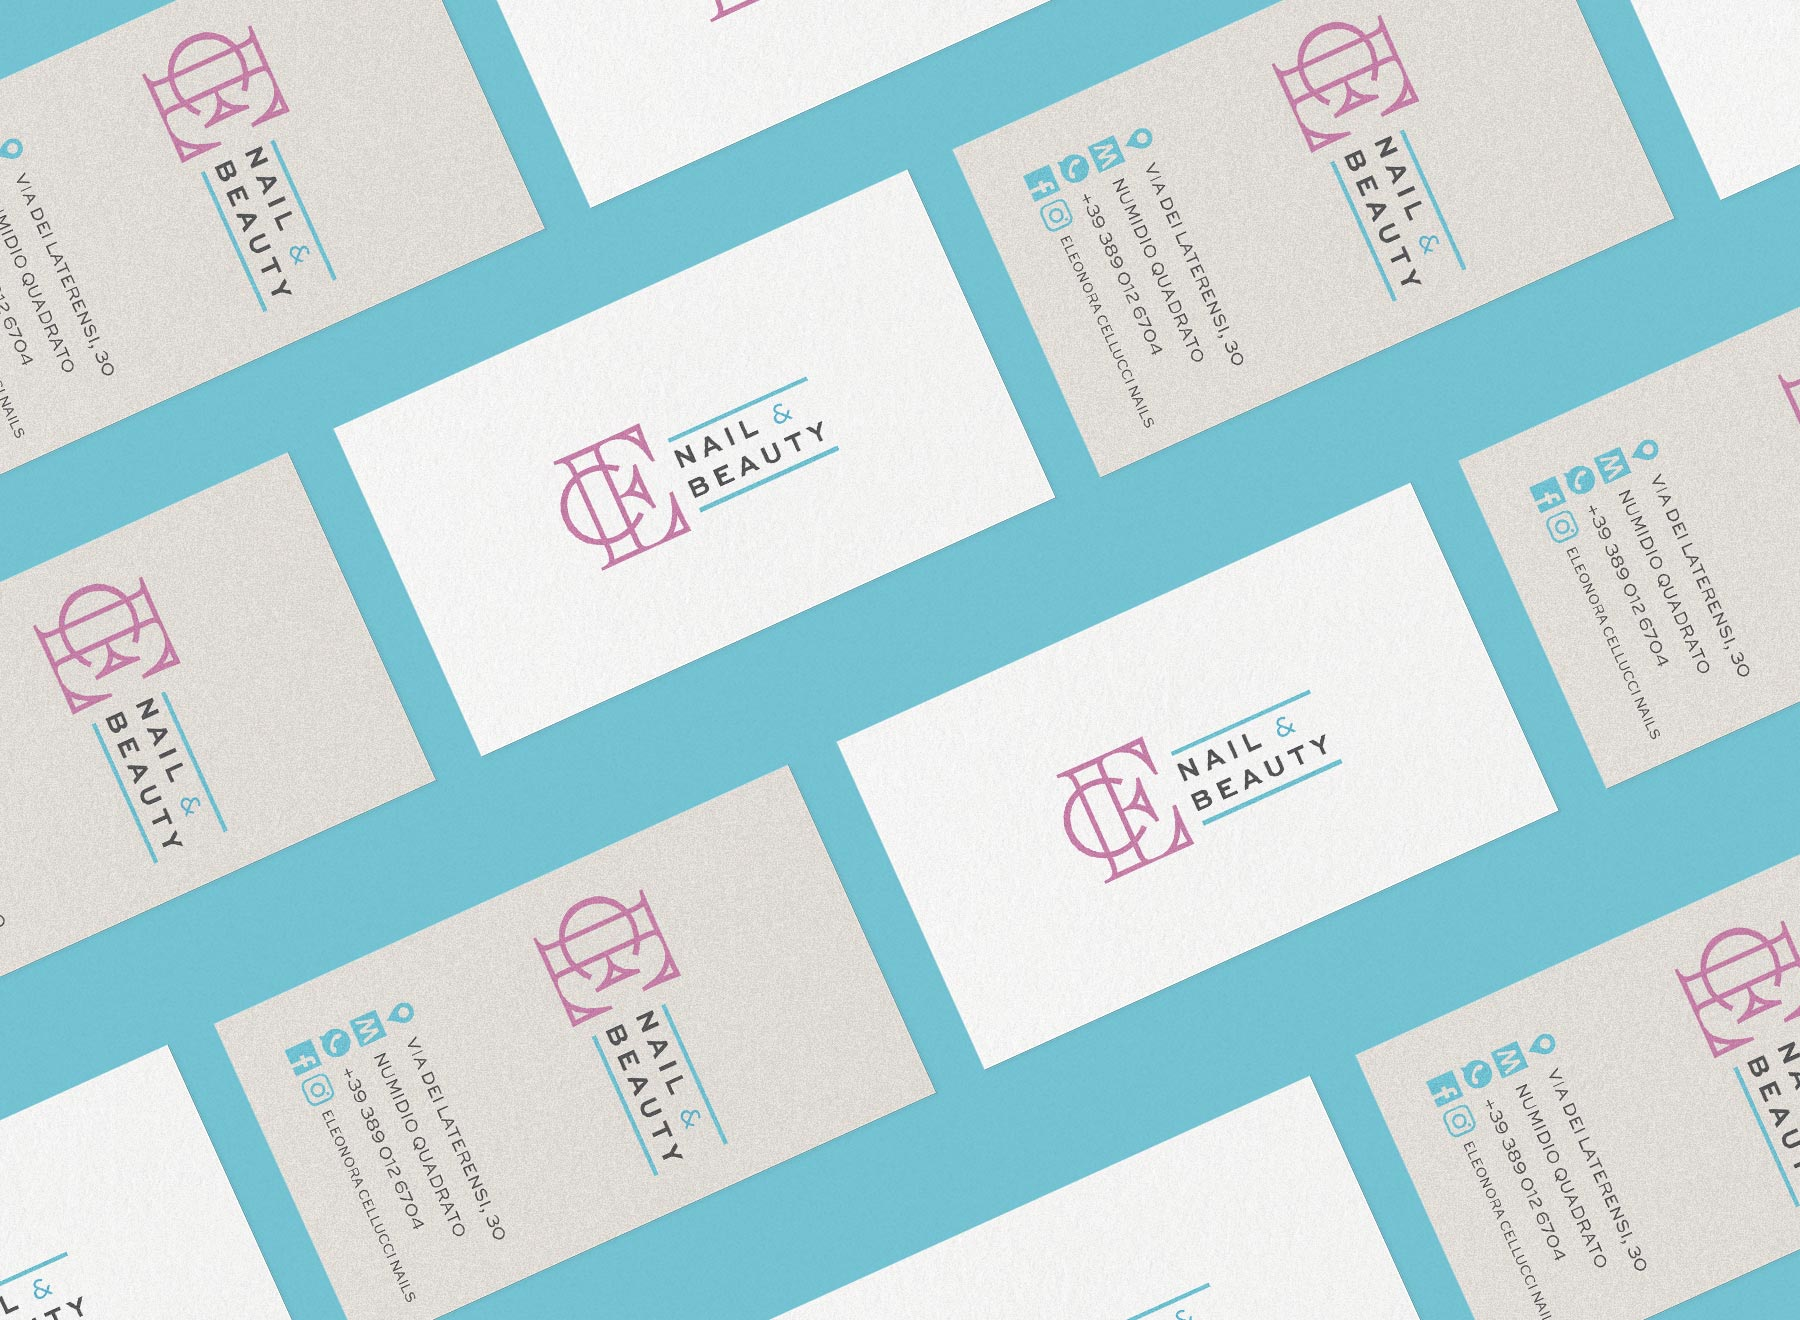 Business card isometric su sfondo celeste